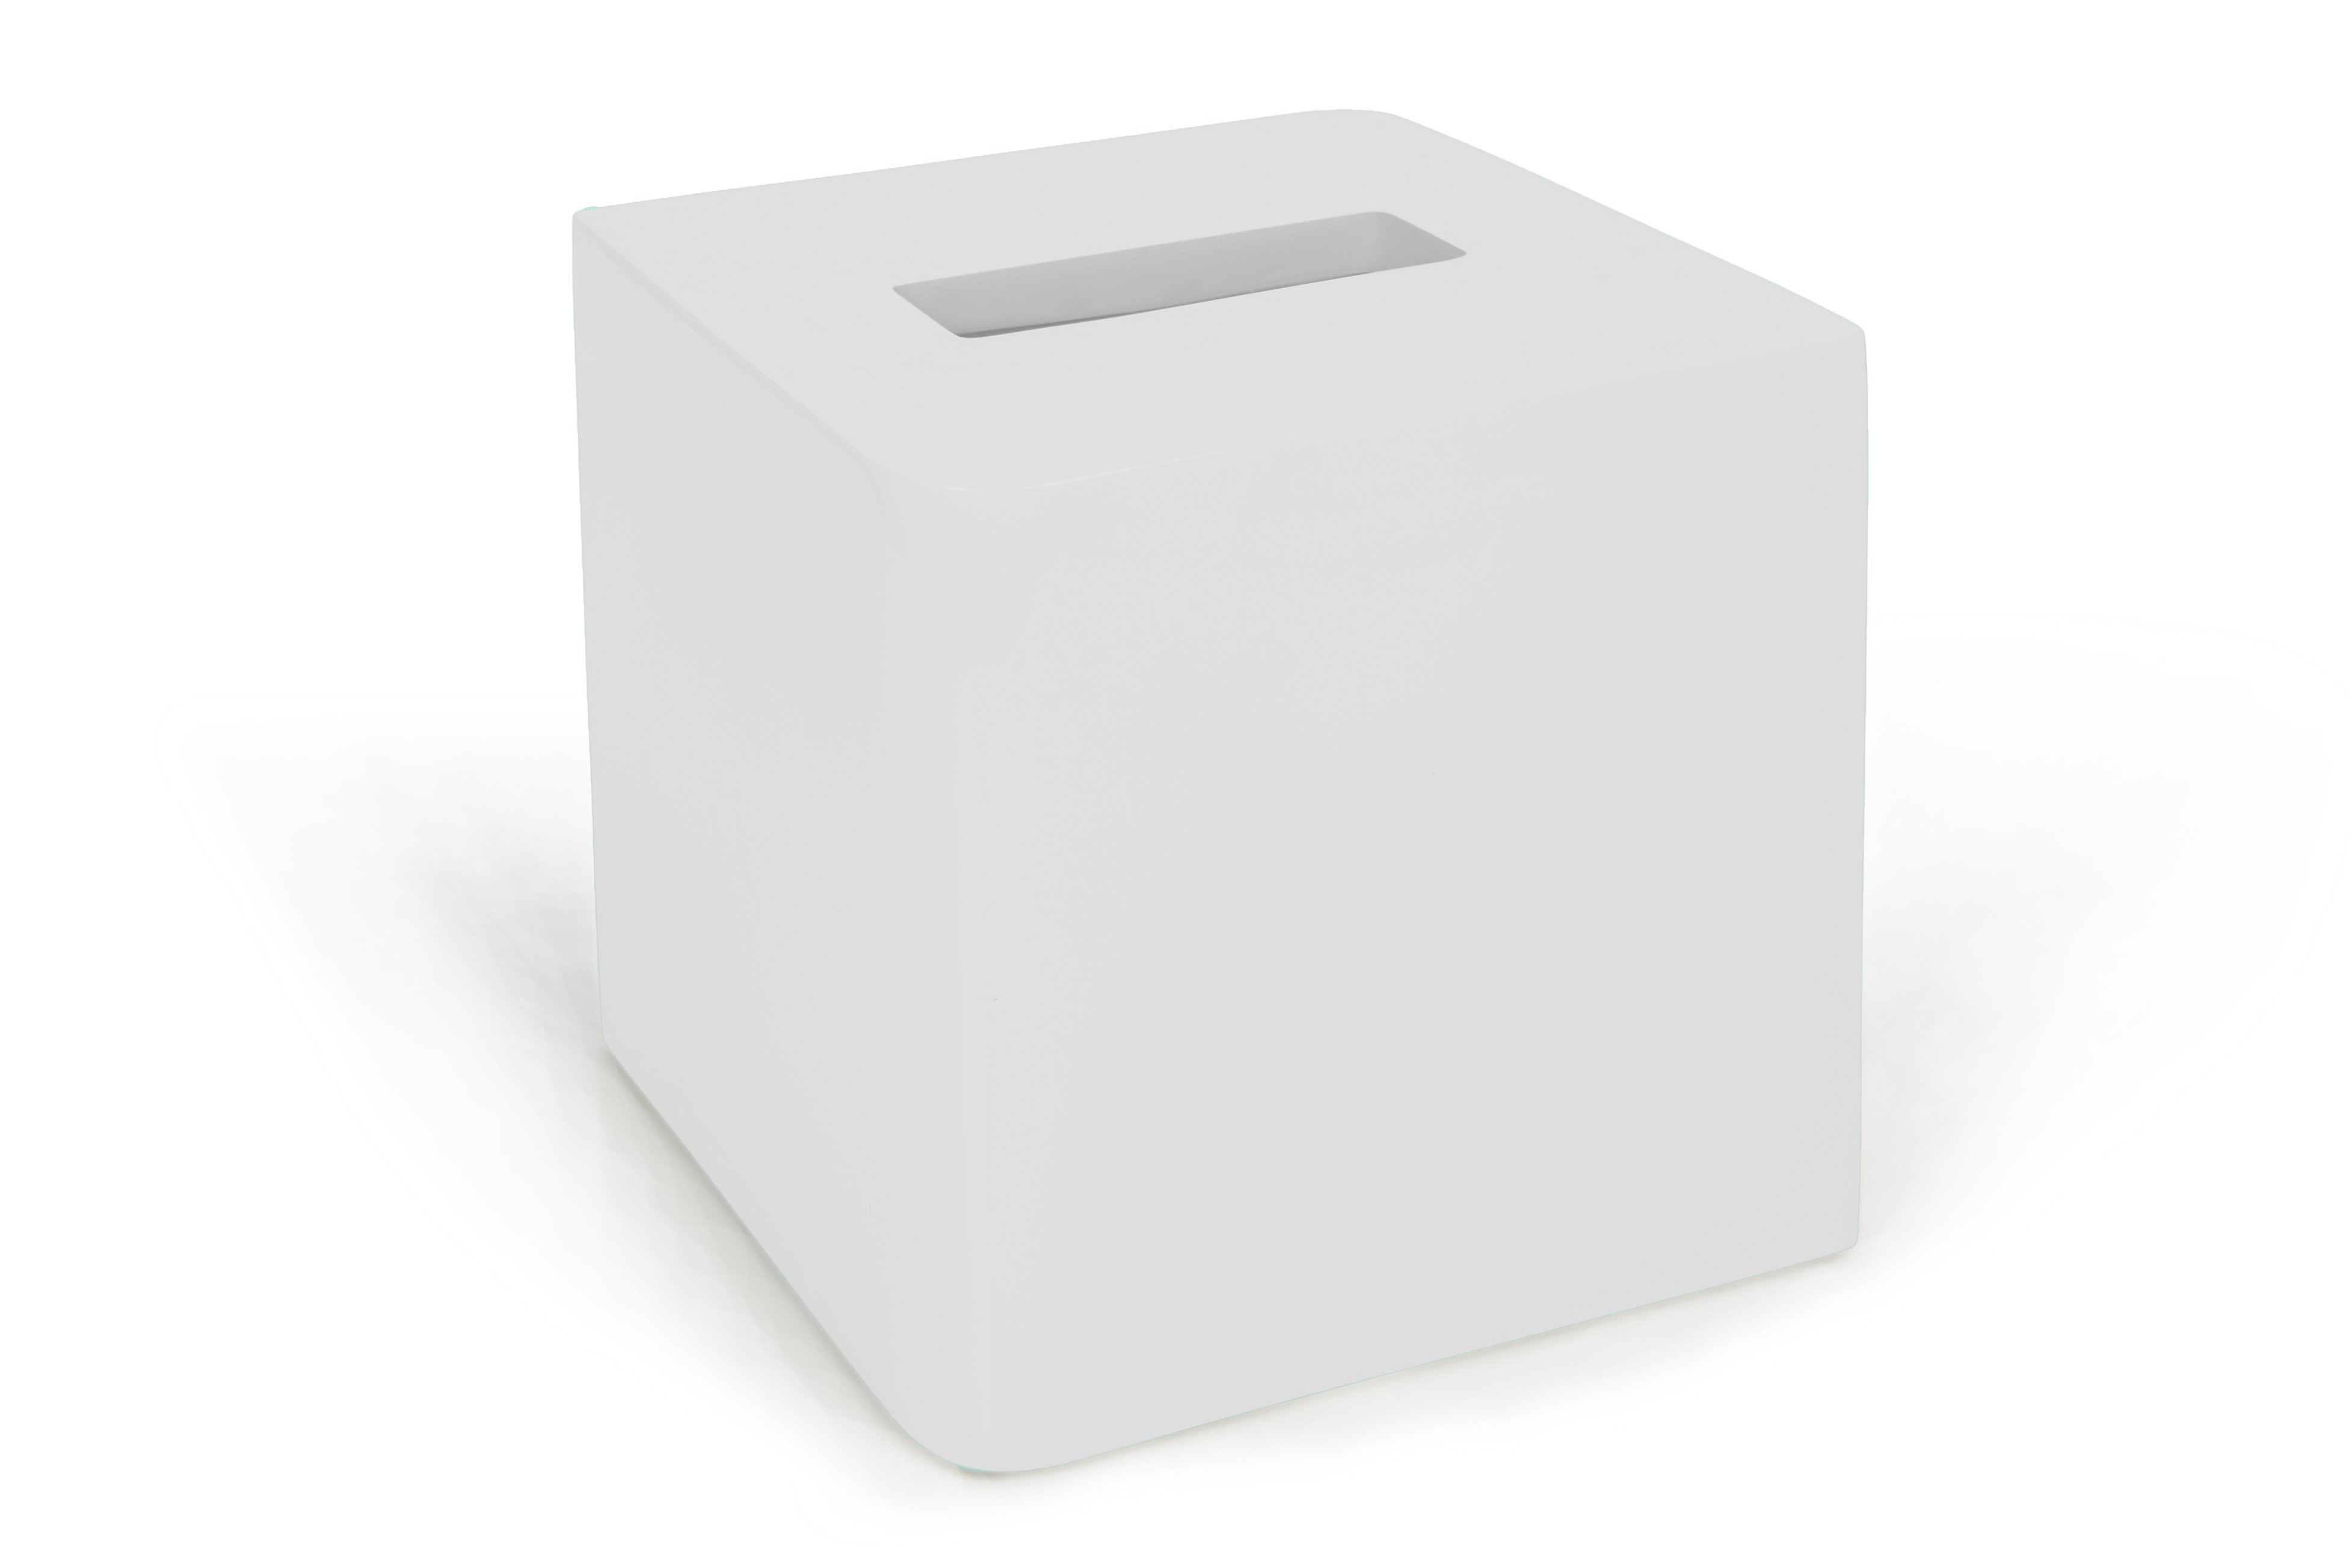 Kassatex Lacca White Tissue Box Cover